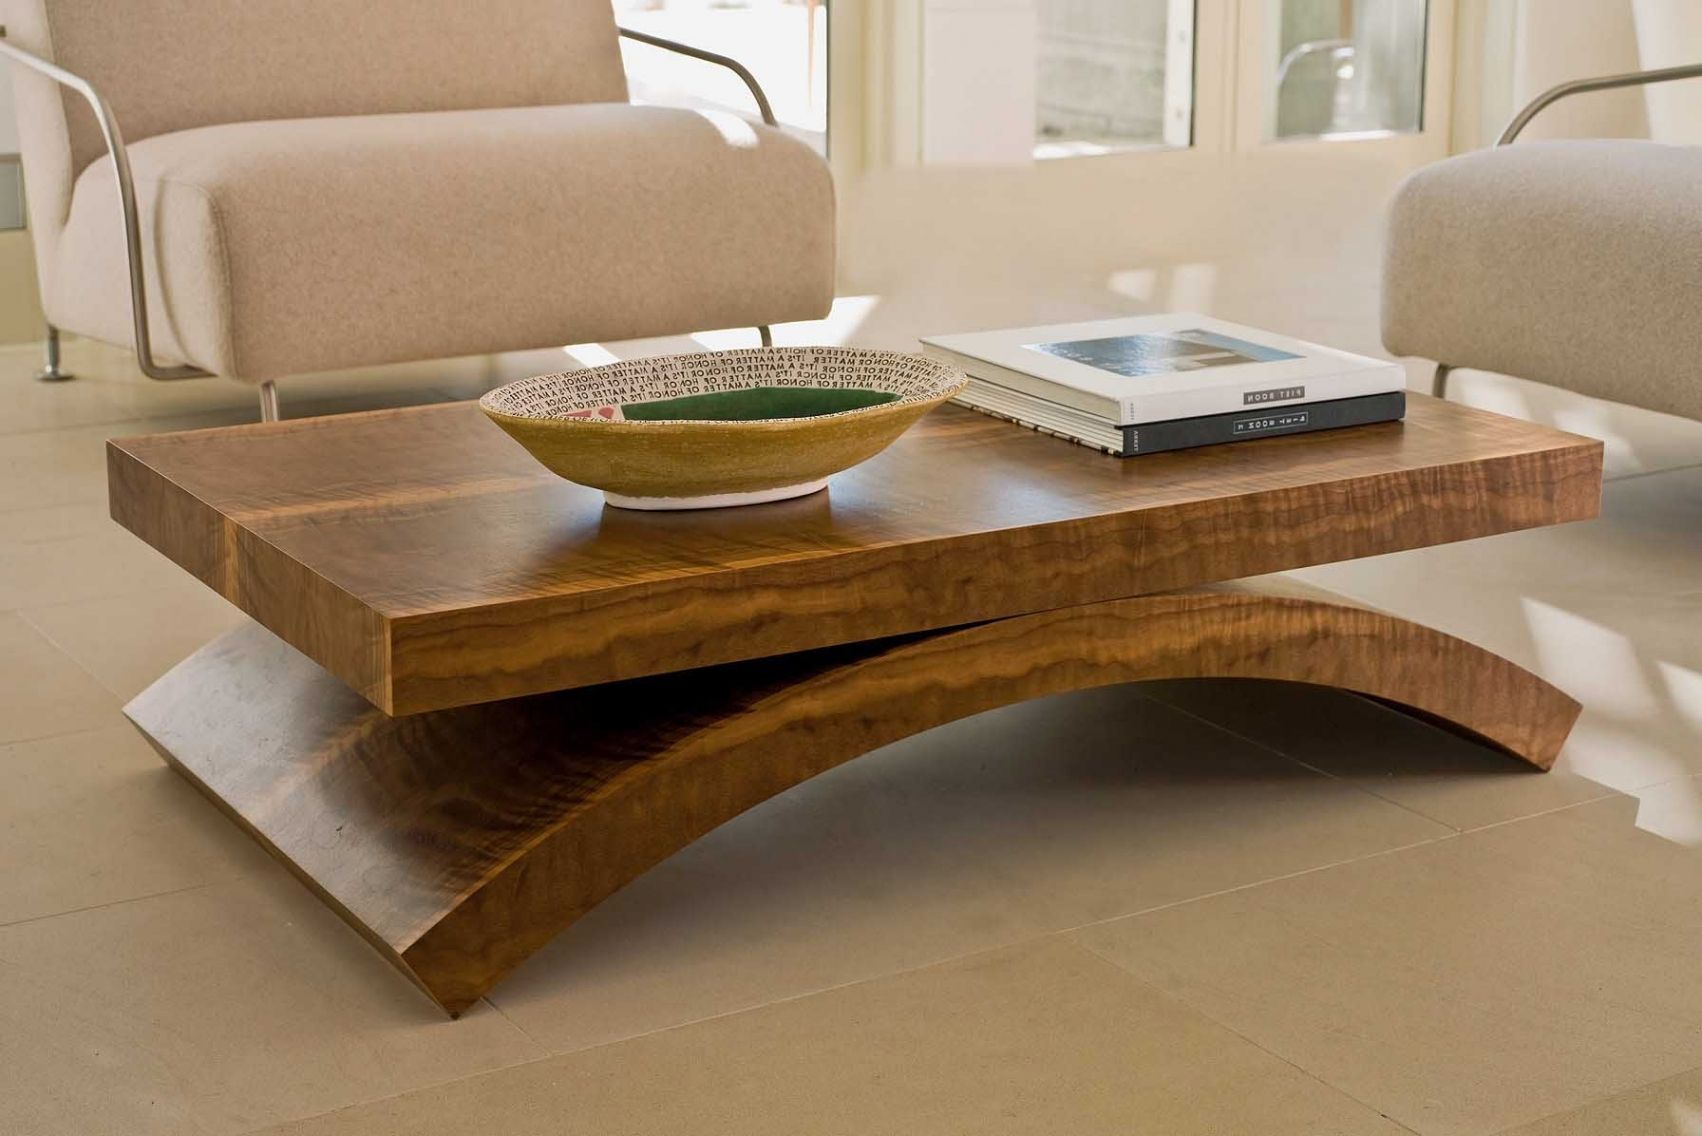 70 marvelous modern coffee table design inspirations collections rh uk pinterest com